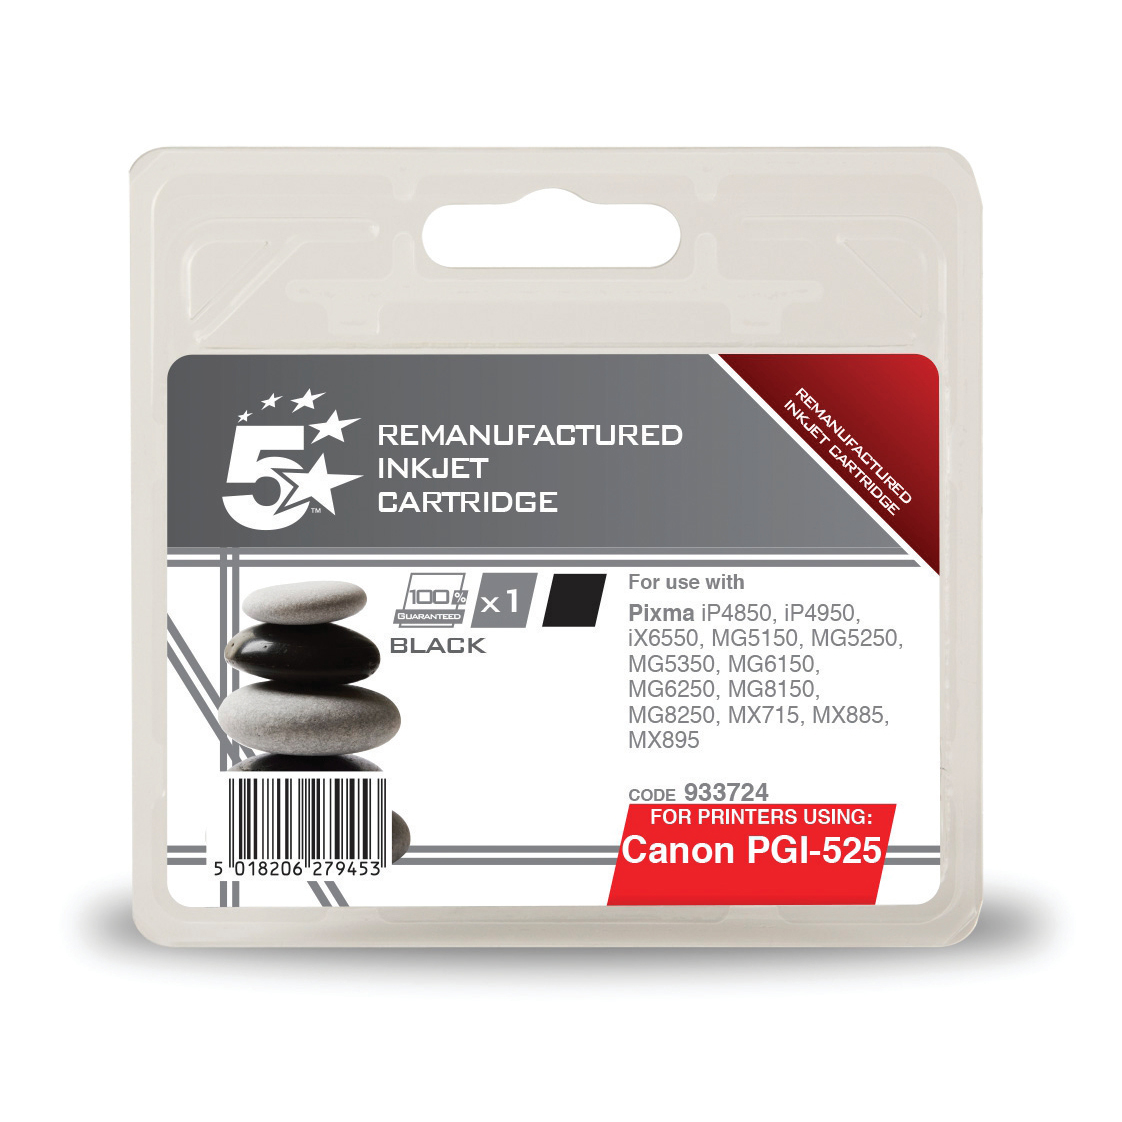 5 Star Office Remanufactured Inkjet Cartridge Page Life 341pp 19ml Black [Canon PGI-525PGBK Alternative]